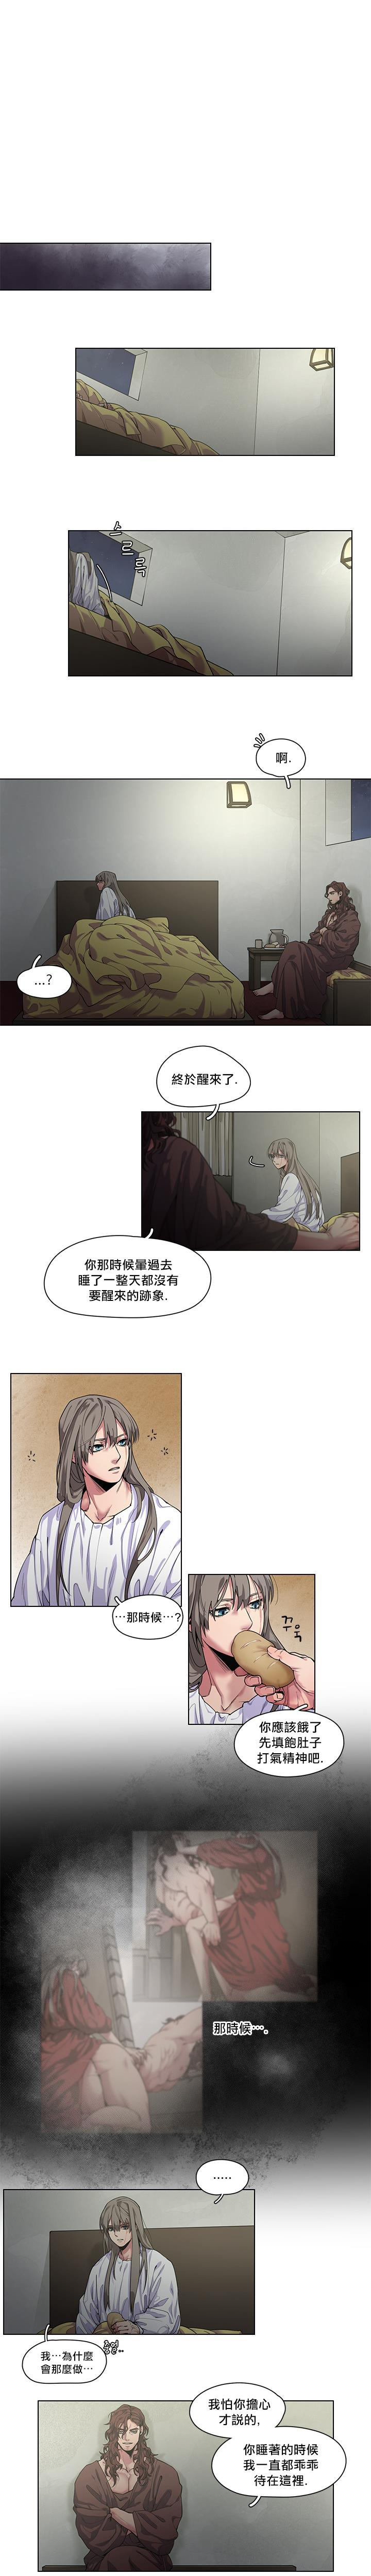 The Warrior and the Deity   勇者与山神 Ch. 2-6+加笔1+加笔2 23